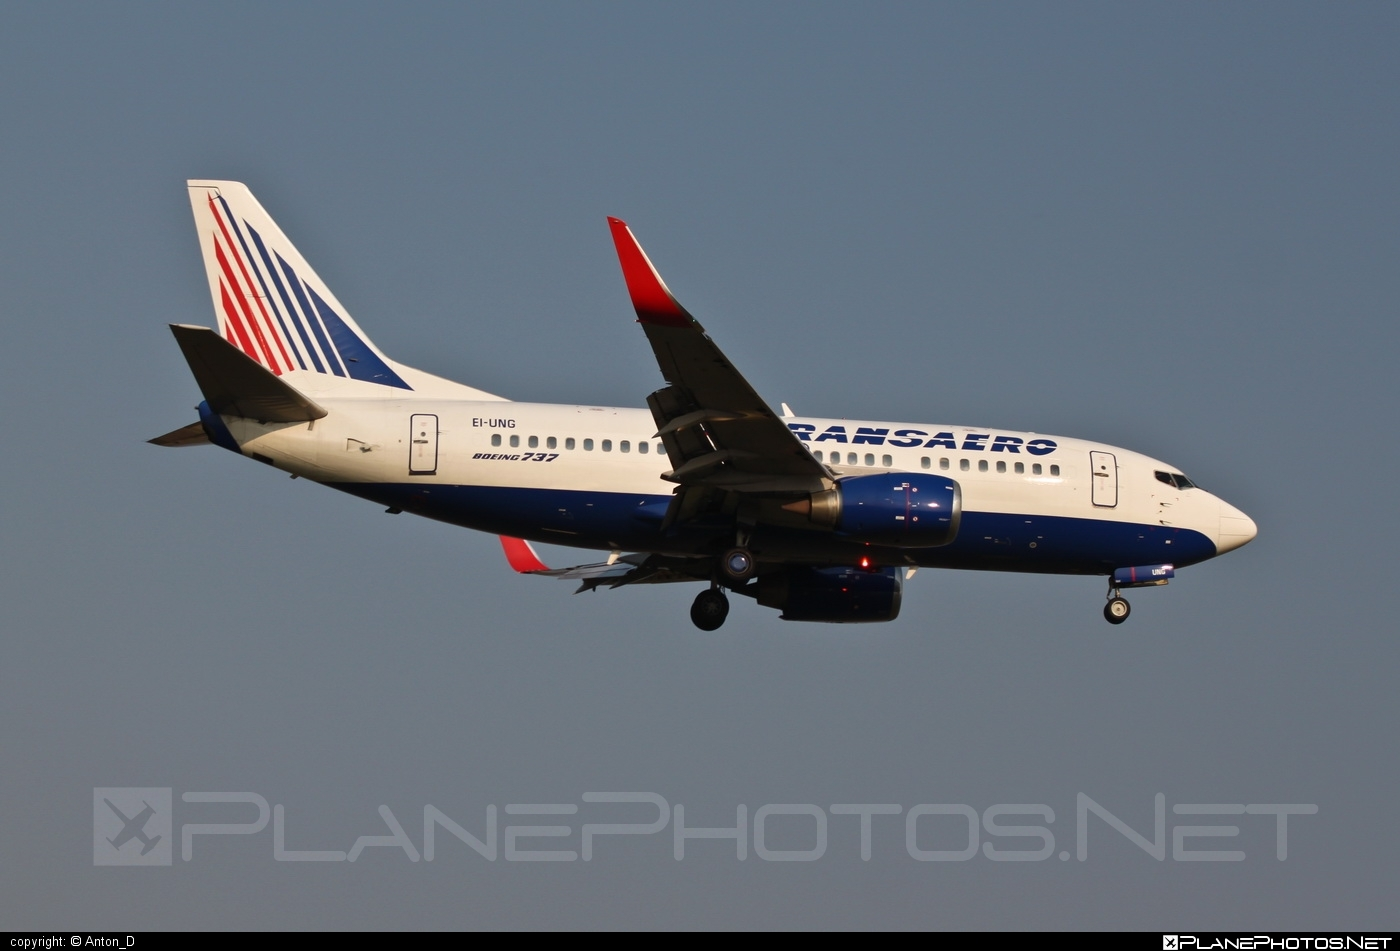 Boeing 737-500 - EI-UNG operated by Transaero Airlines #b737 #boeing #boeing737 #transaero #transaeroairlines